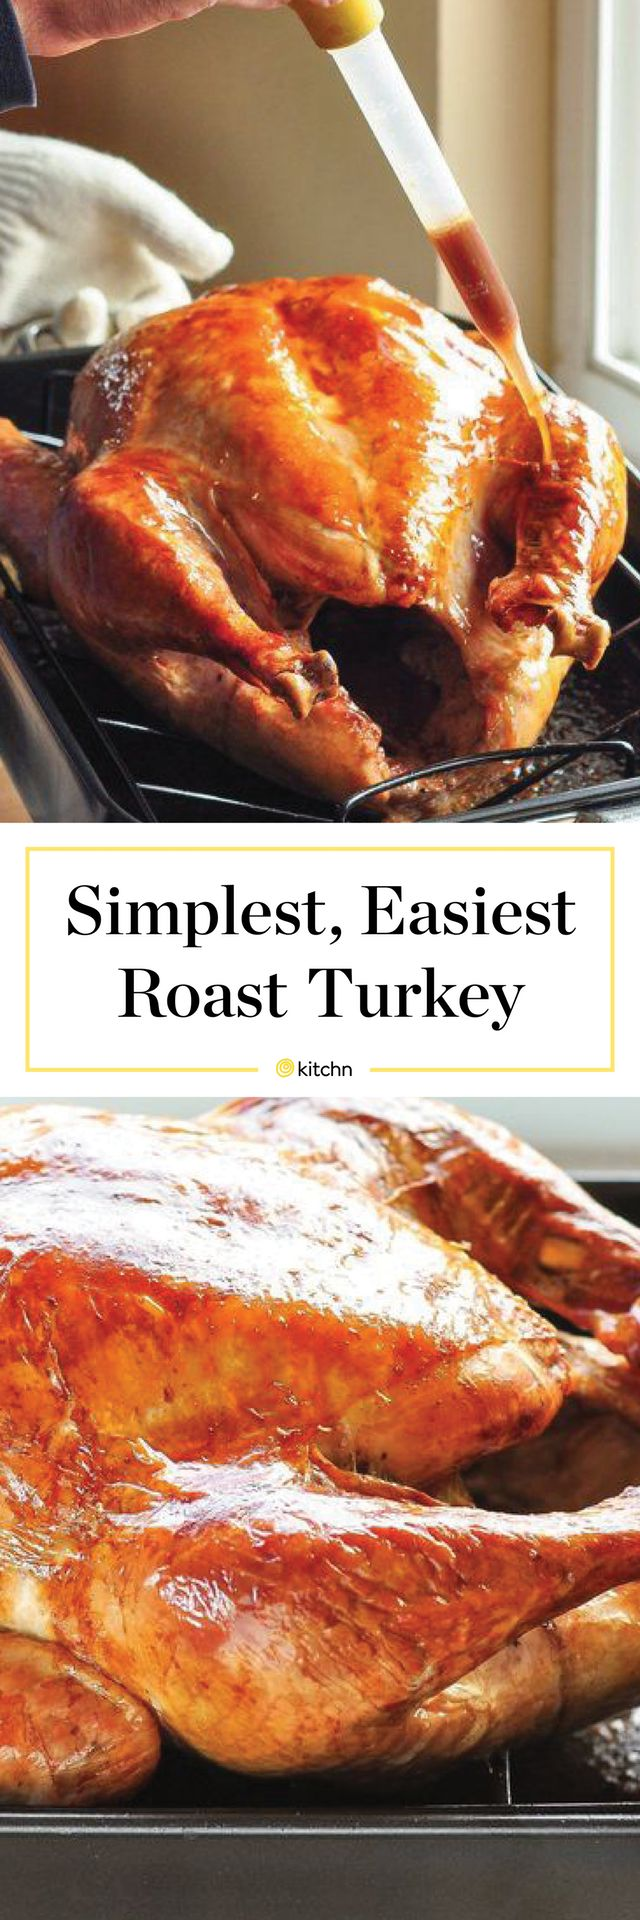 How To Cook A Turkey - Easy Whole Roast Turkey Recipe. The BEST simple roasted turkey recipes don't call for brines or finicky rubs. You don't even need any herbs! Just some butter, seasonings, and chicken stock ensure moist, tender, juicy results with little fuss. Works great with small or big birds.